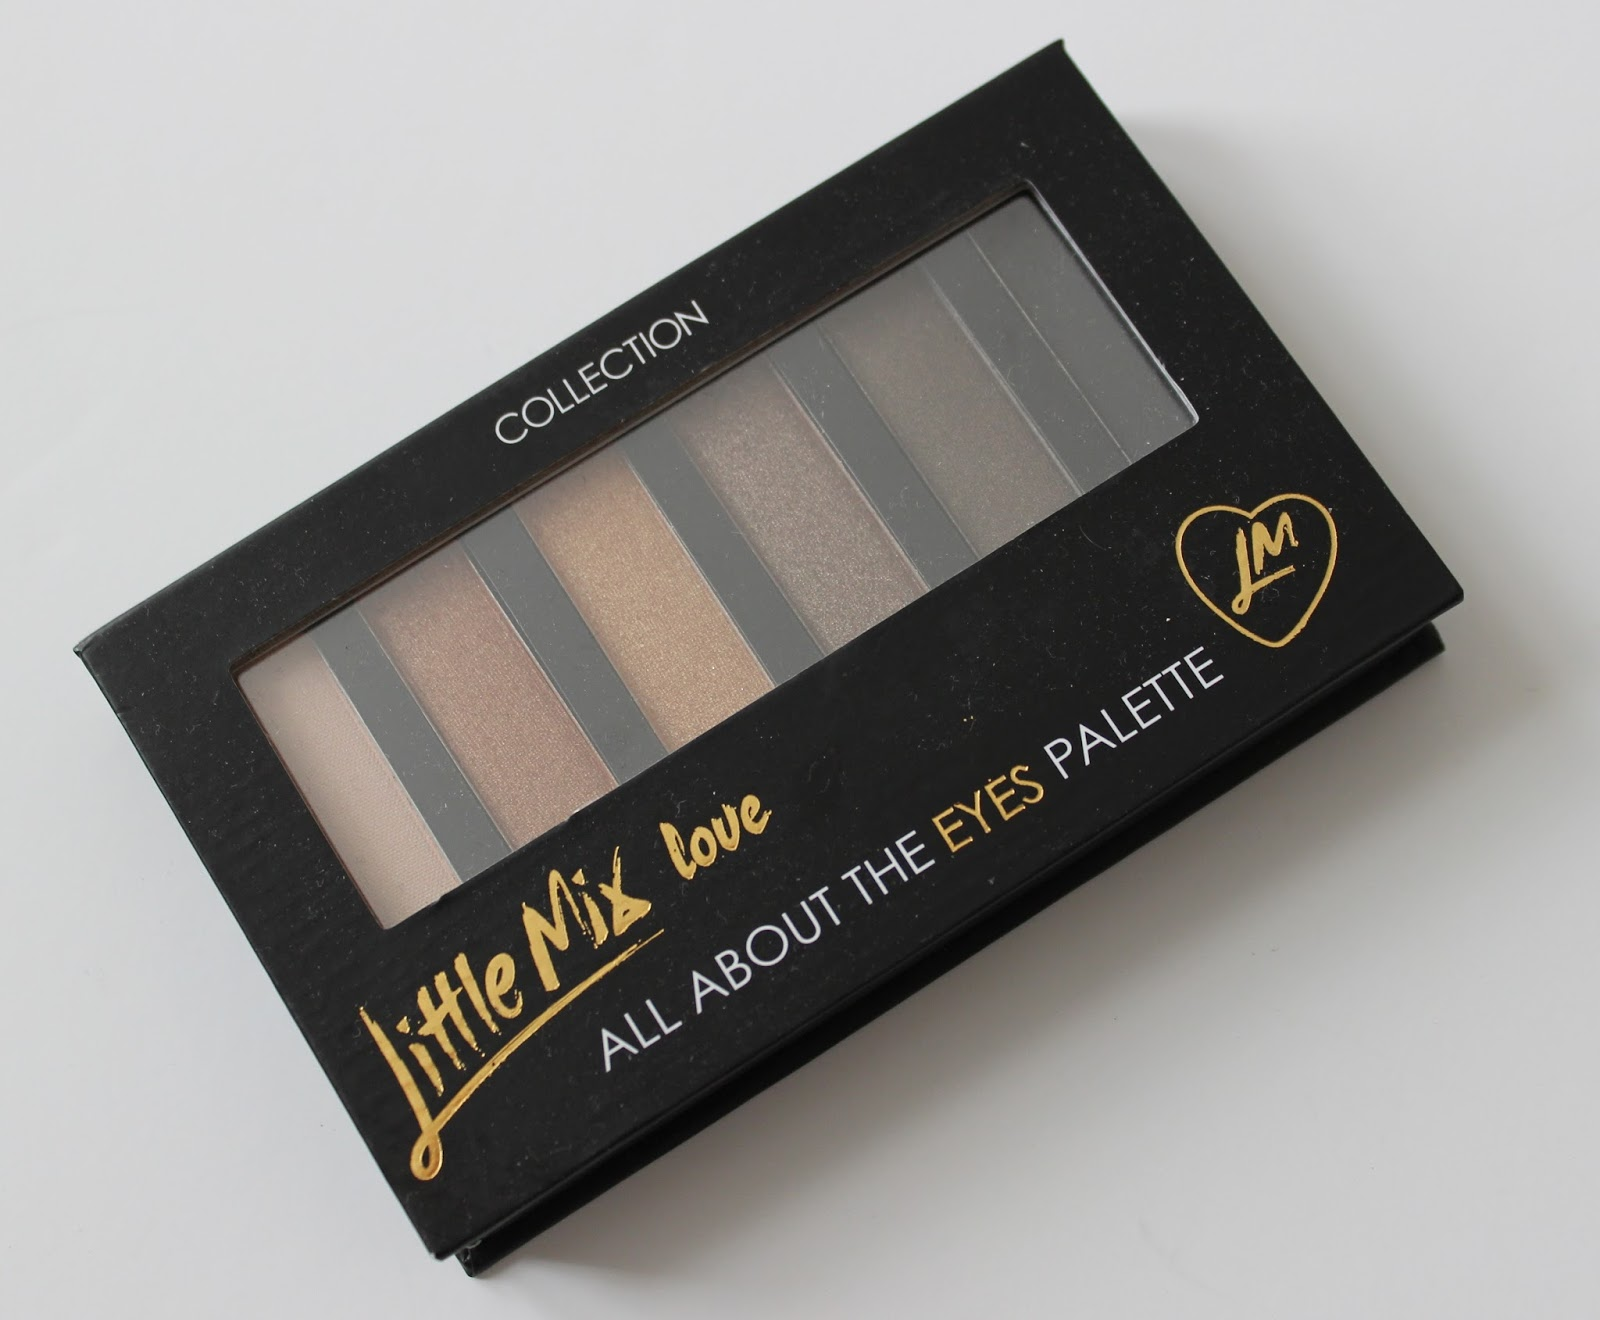 Collection Little Mix loves eye shadow palette